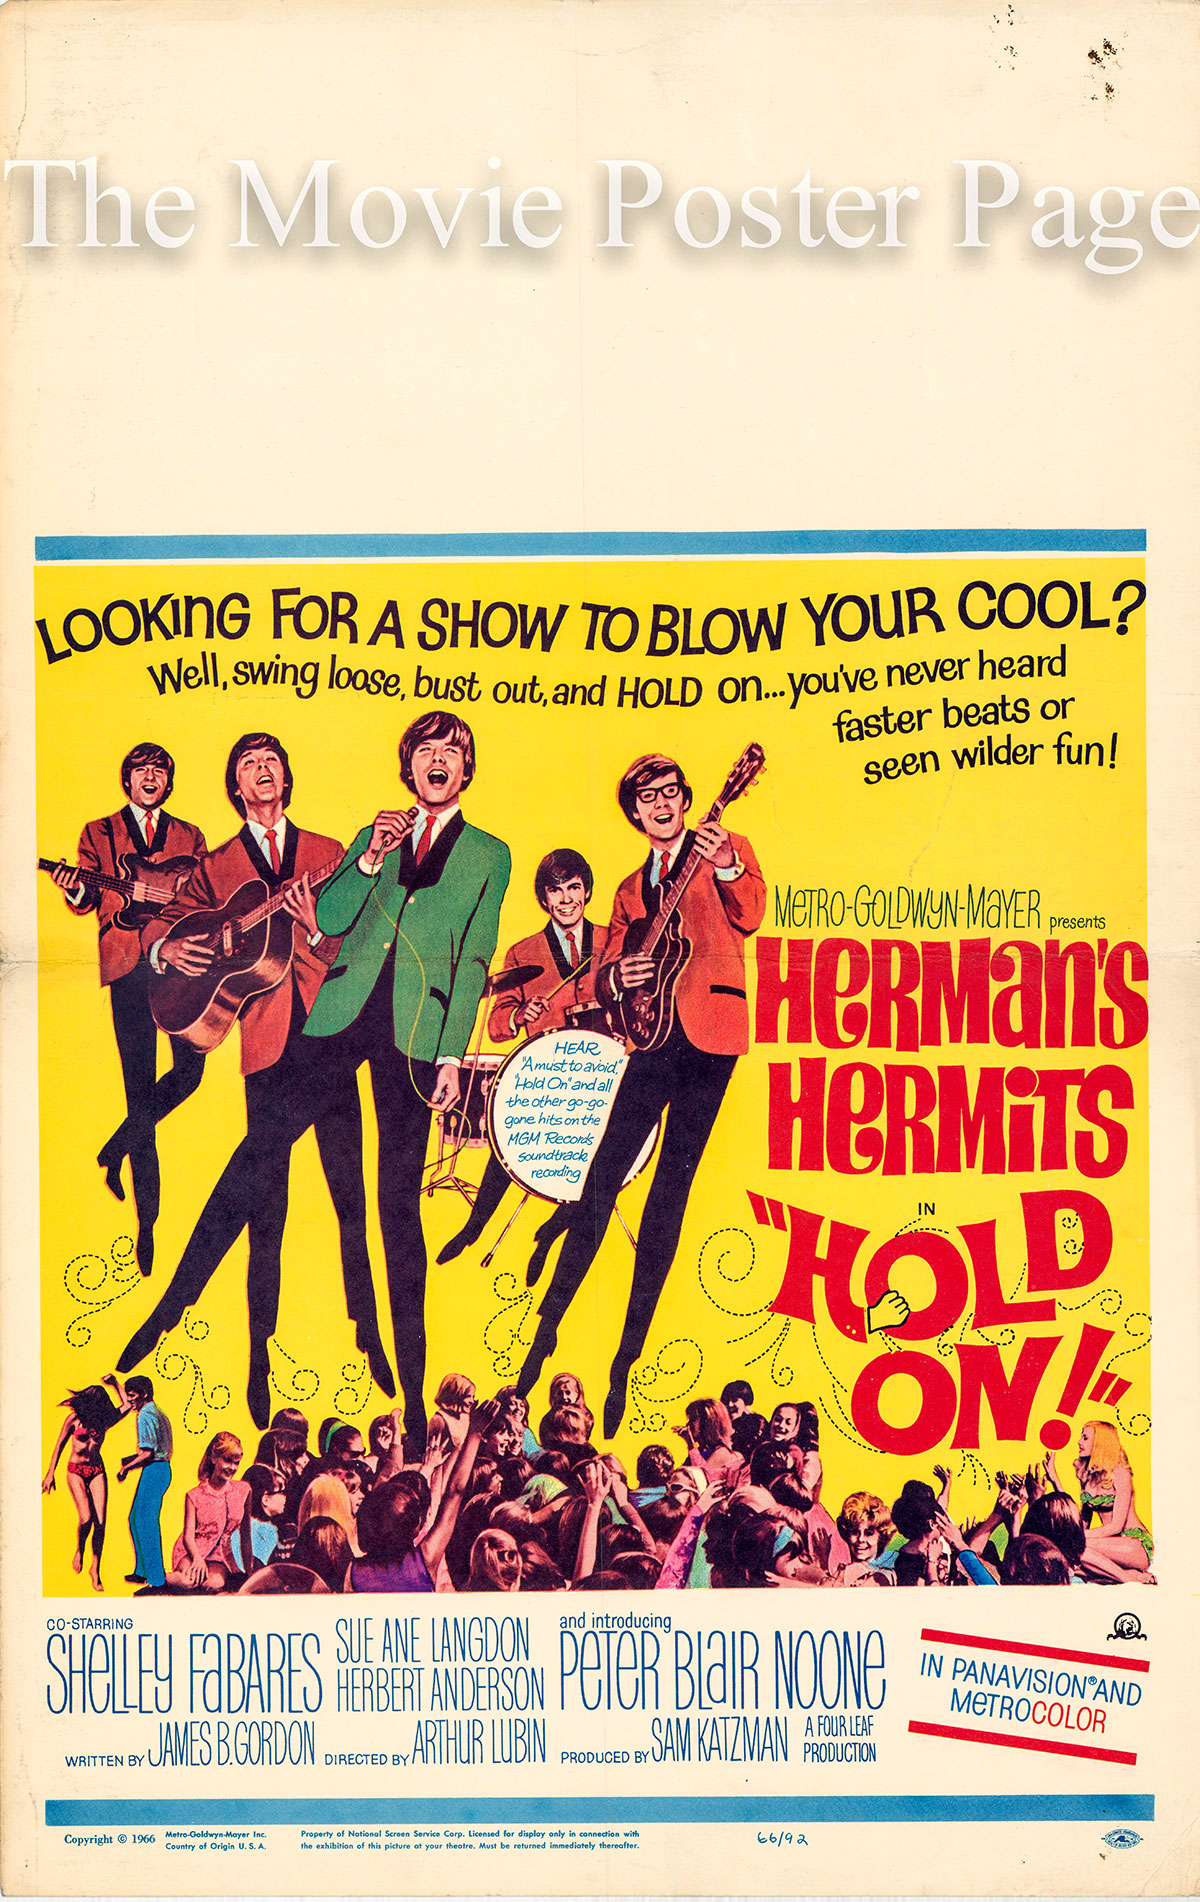 Pictured is a US window card for the 1966 Arthur Lubin film Hold On starring Herman's Hermits.